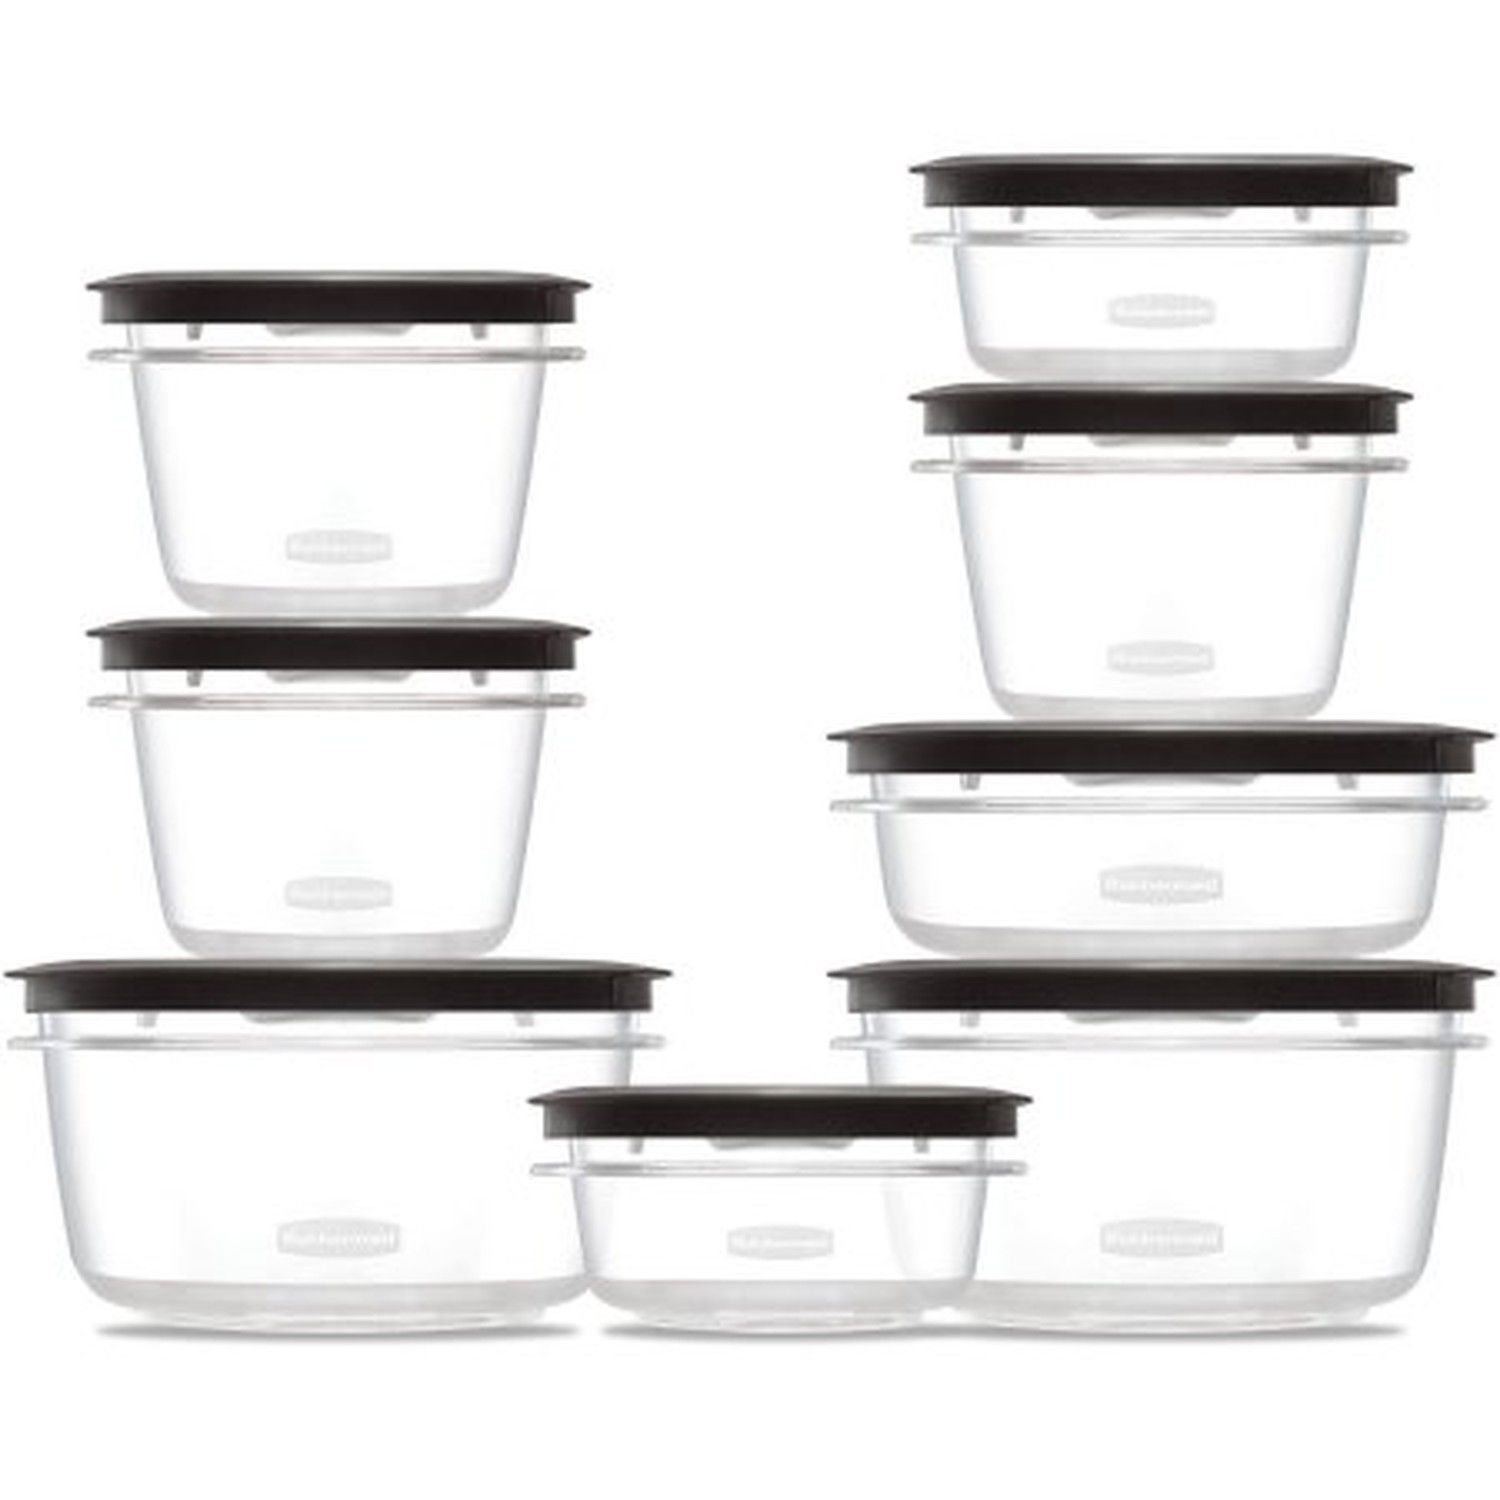 Rubbermaid Premier Food Storage Containers 16-Piece Set New Free Shipping 1